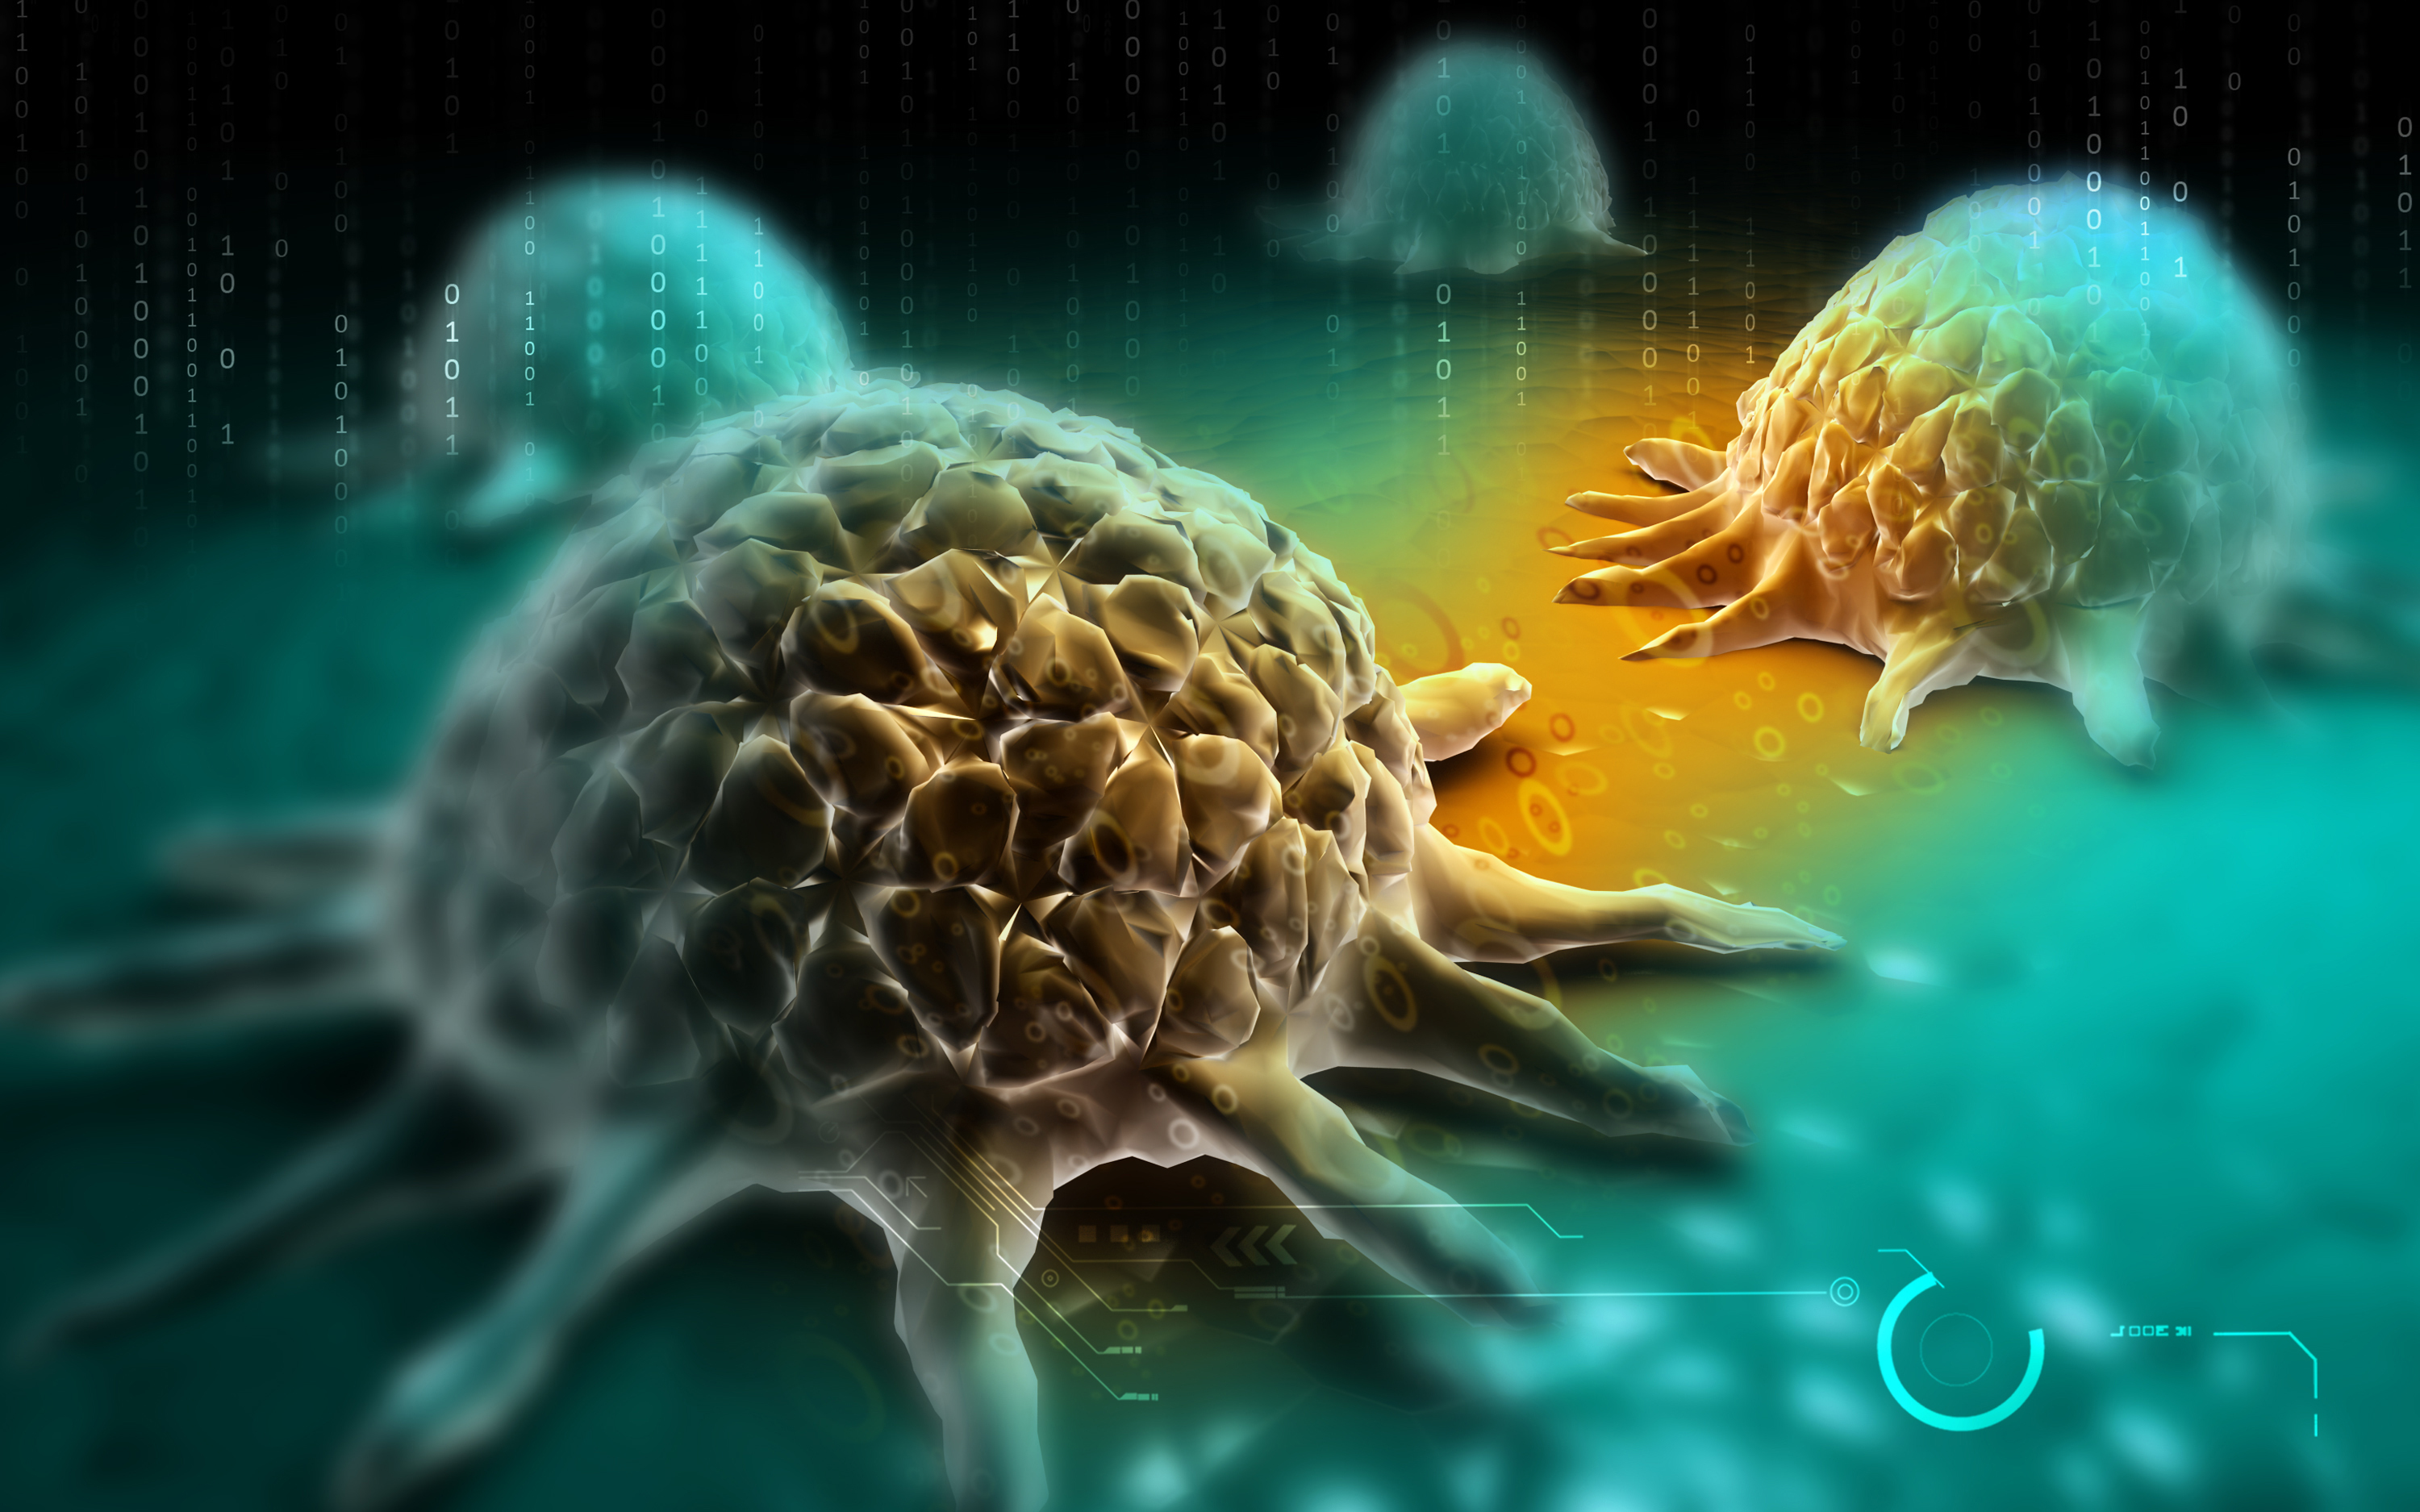 dangerous cancer cells, third eye blogs